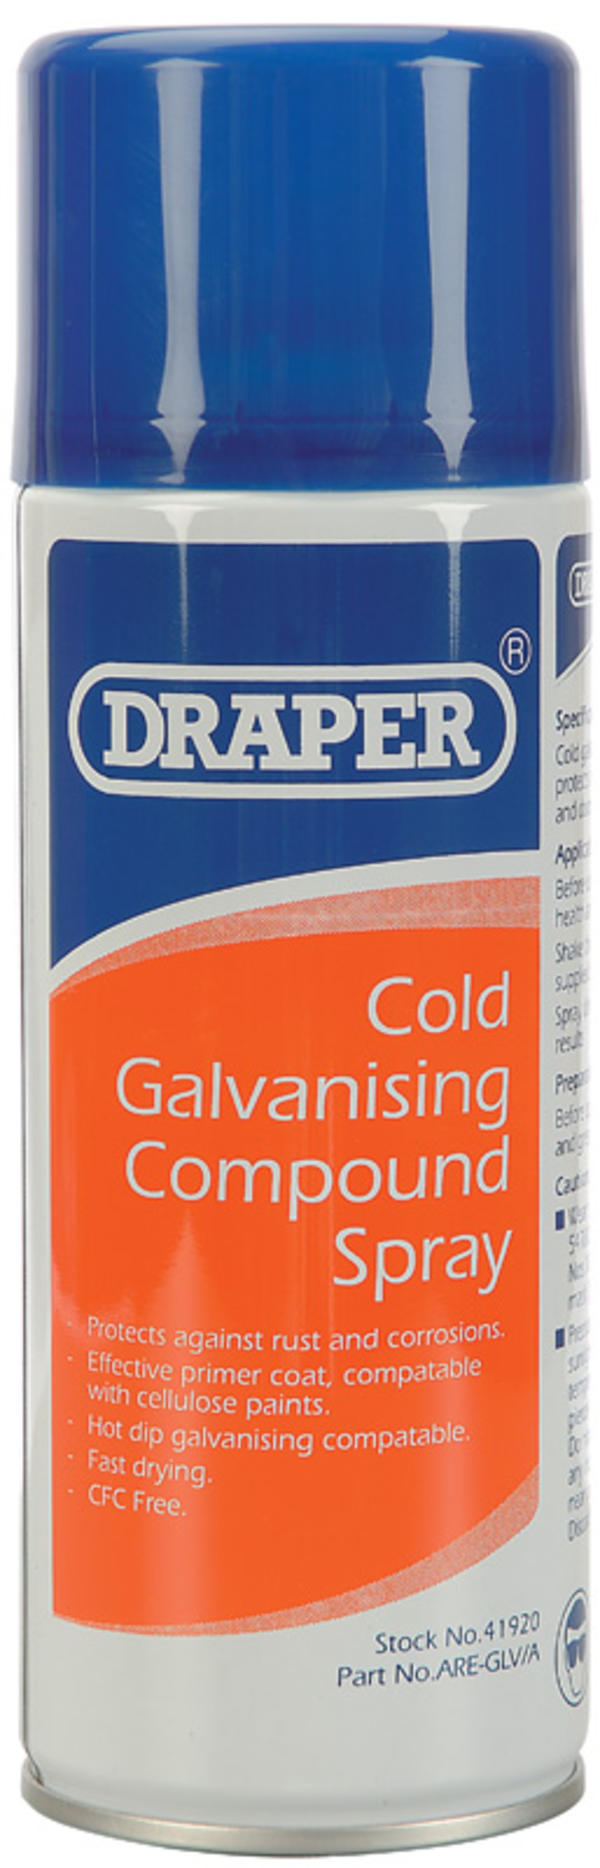 Draper 41920 ARE-GLV/A 400ml Cold Galvanizing Compound Spray Thumbnail 1